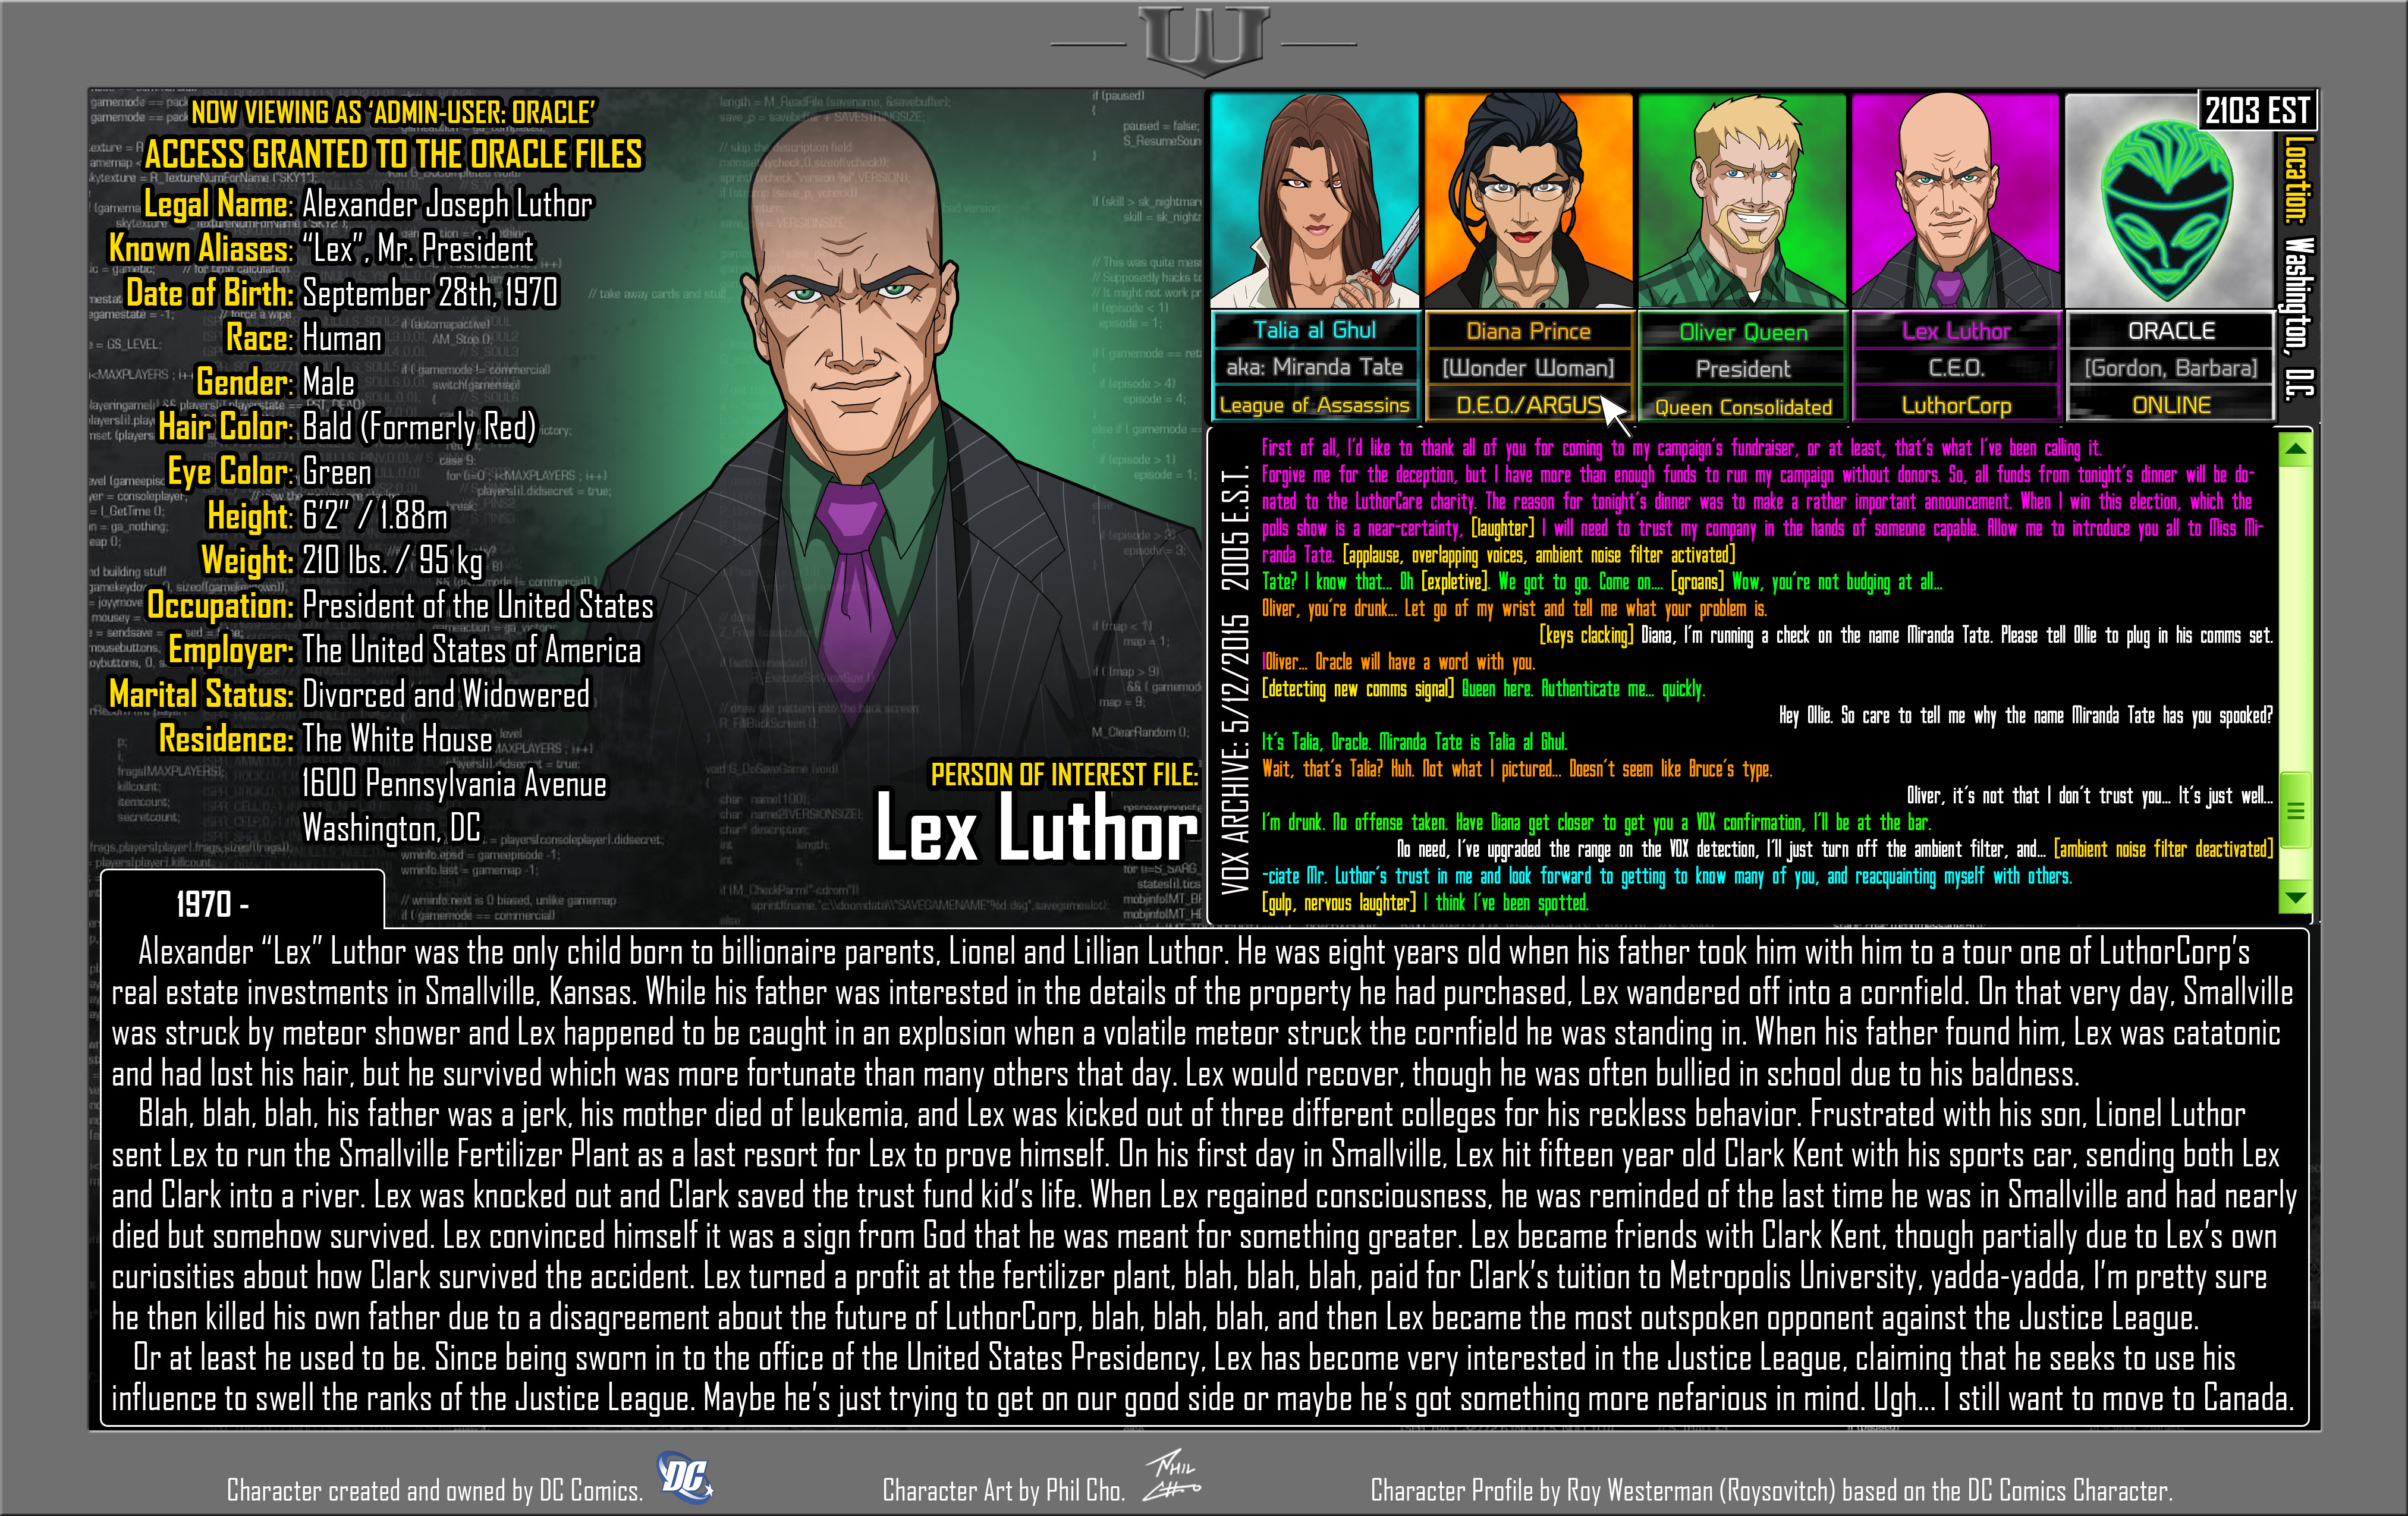 Oracle Files - Lex Luthor